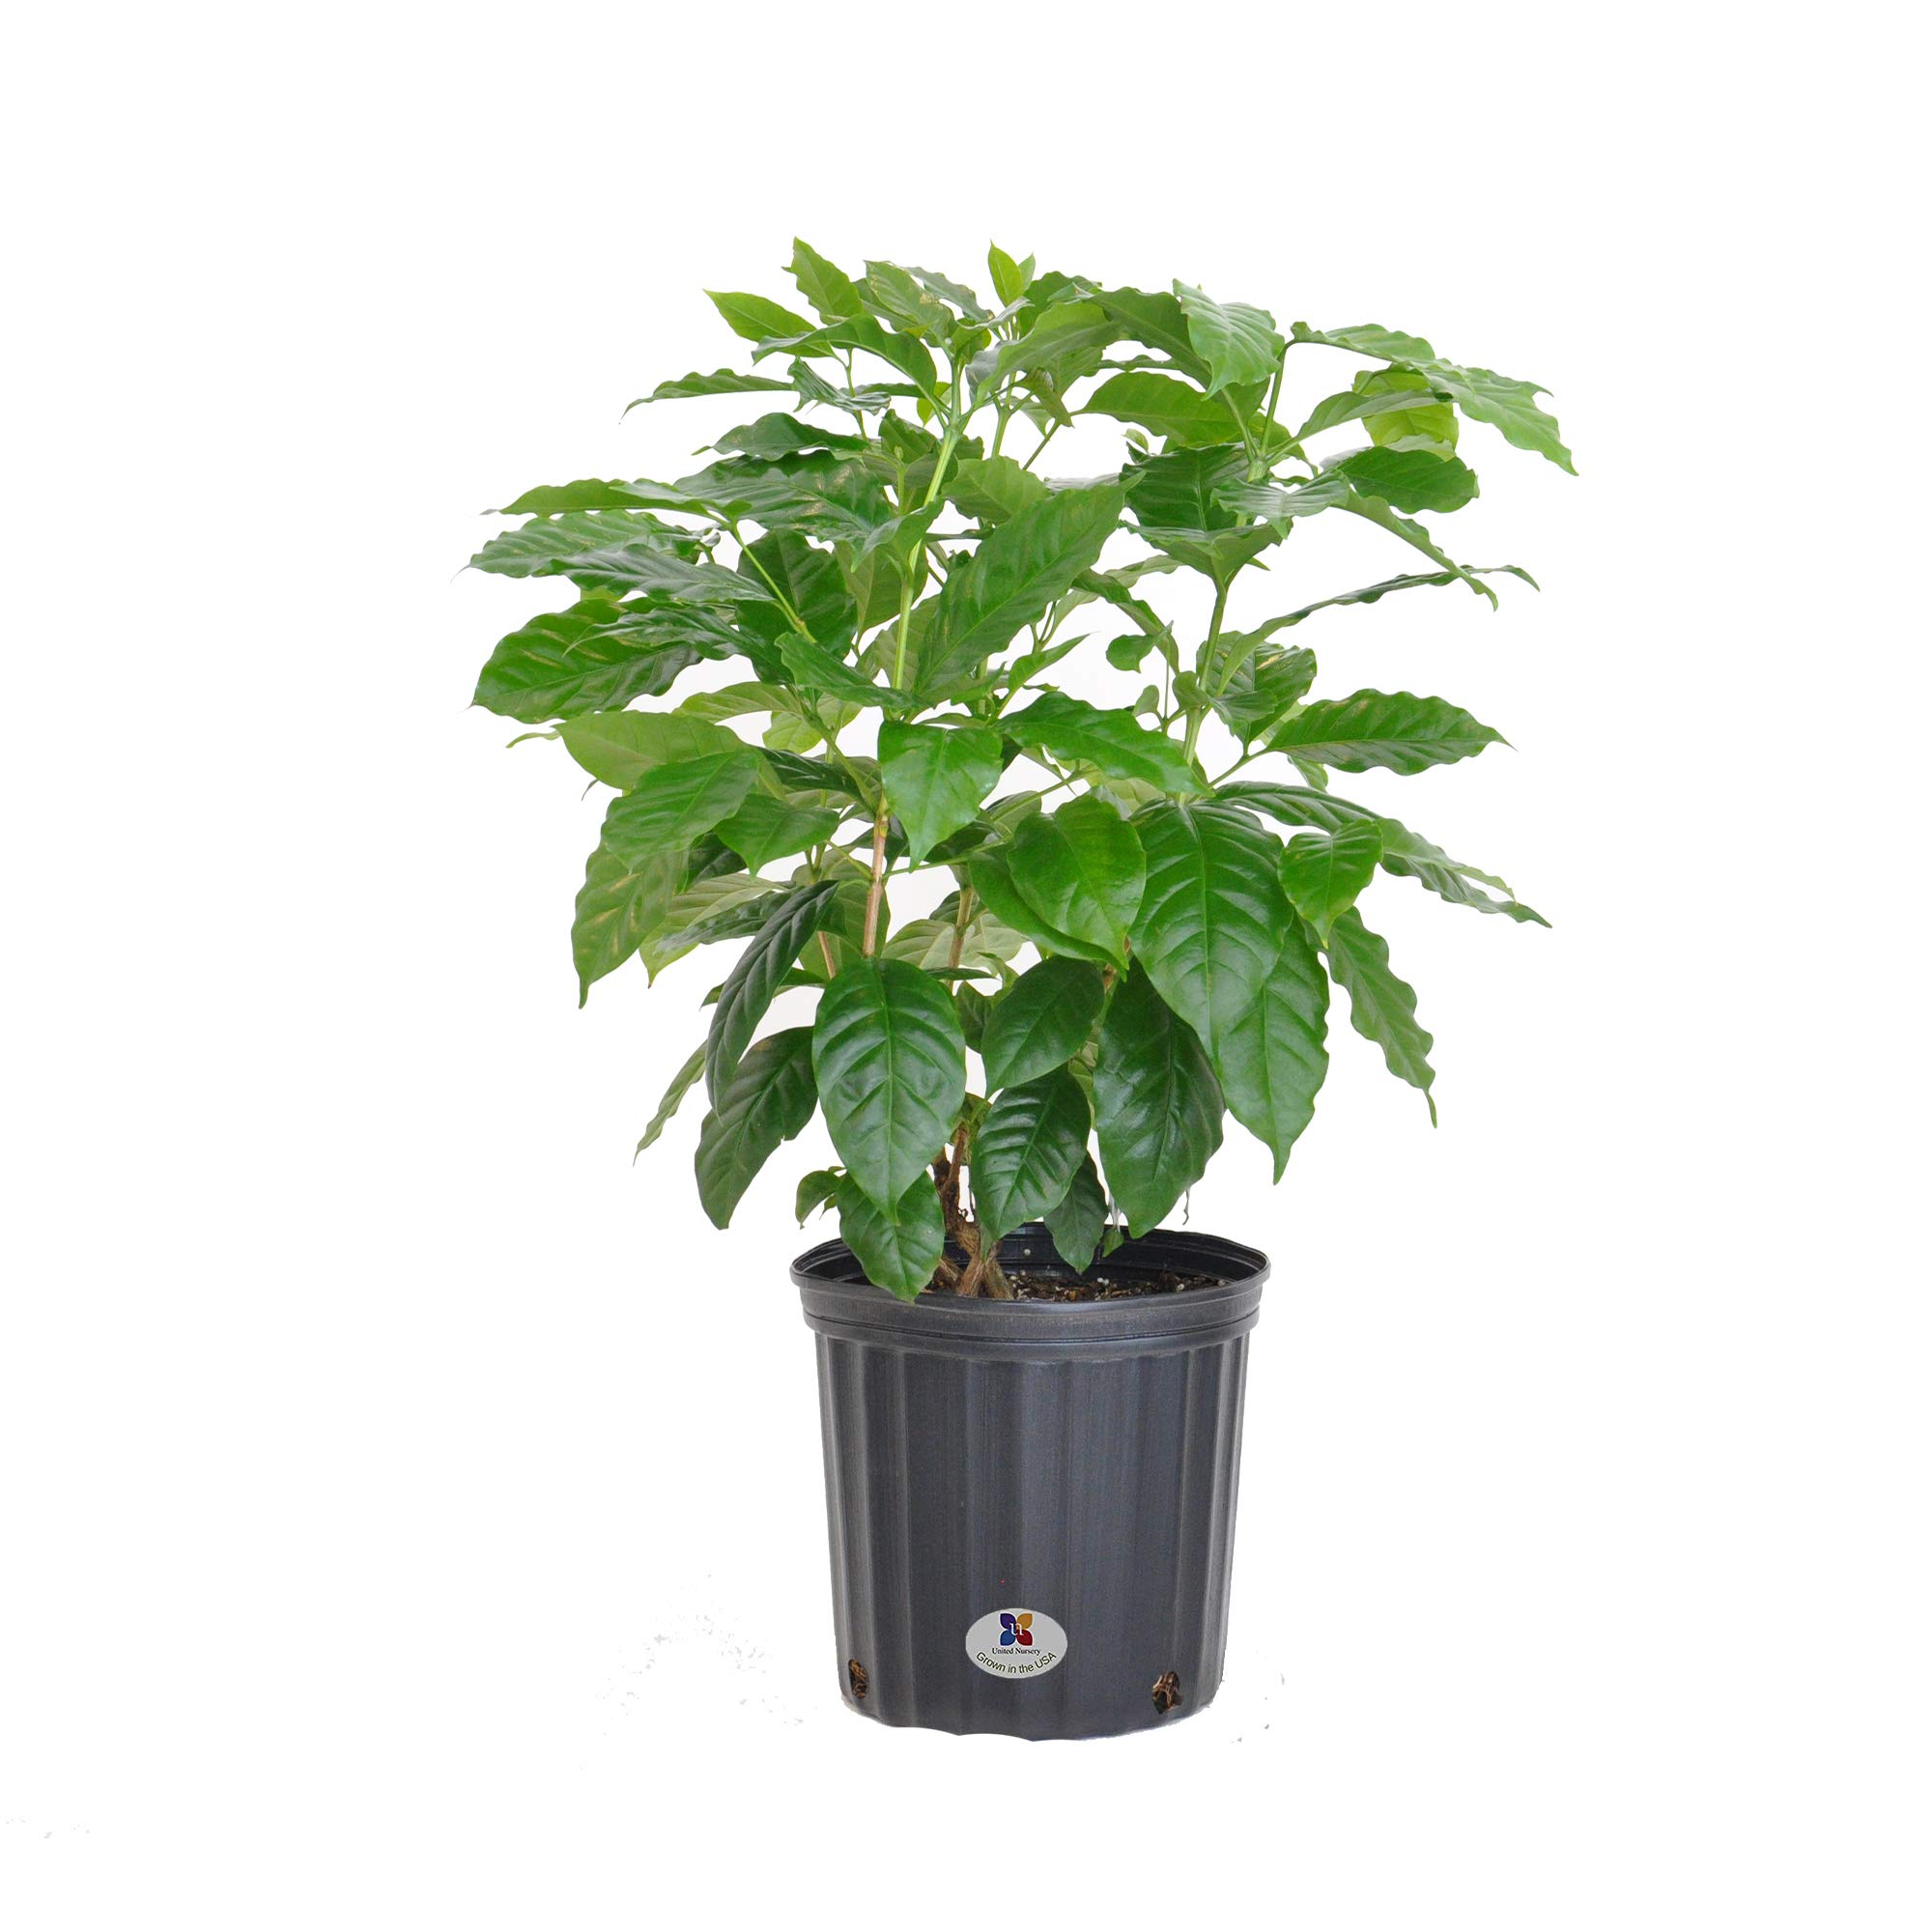 United Nursery Coffee Plant Live Indoor Coffea Arabica Tree Shipped in 9.25 inch Grower Pot 30-34 inch Shipping Size